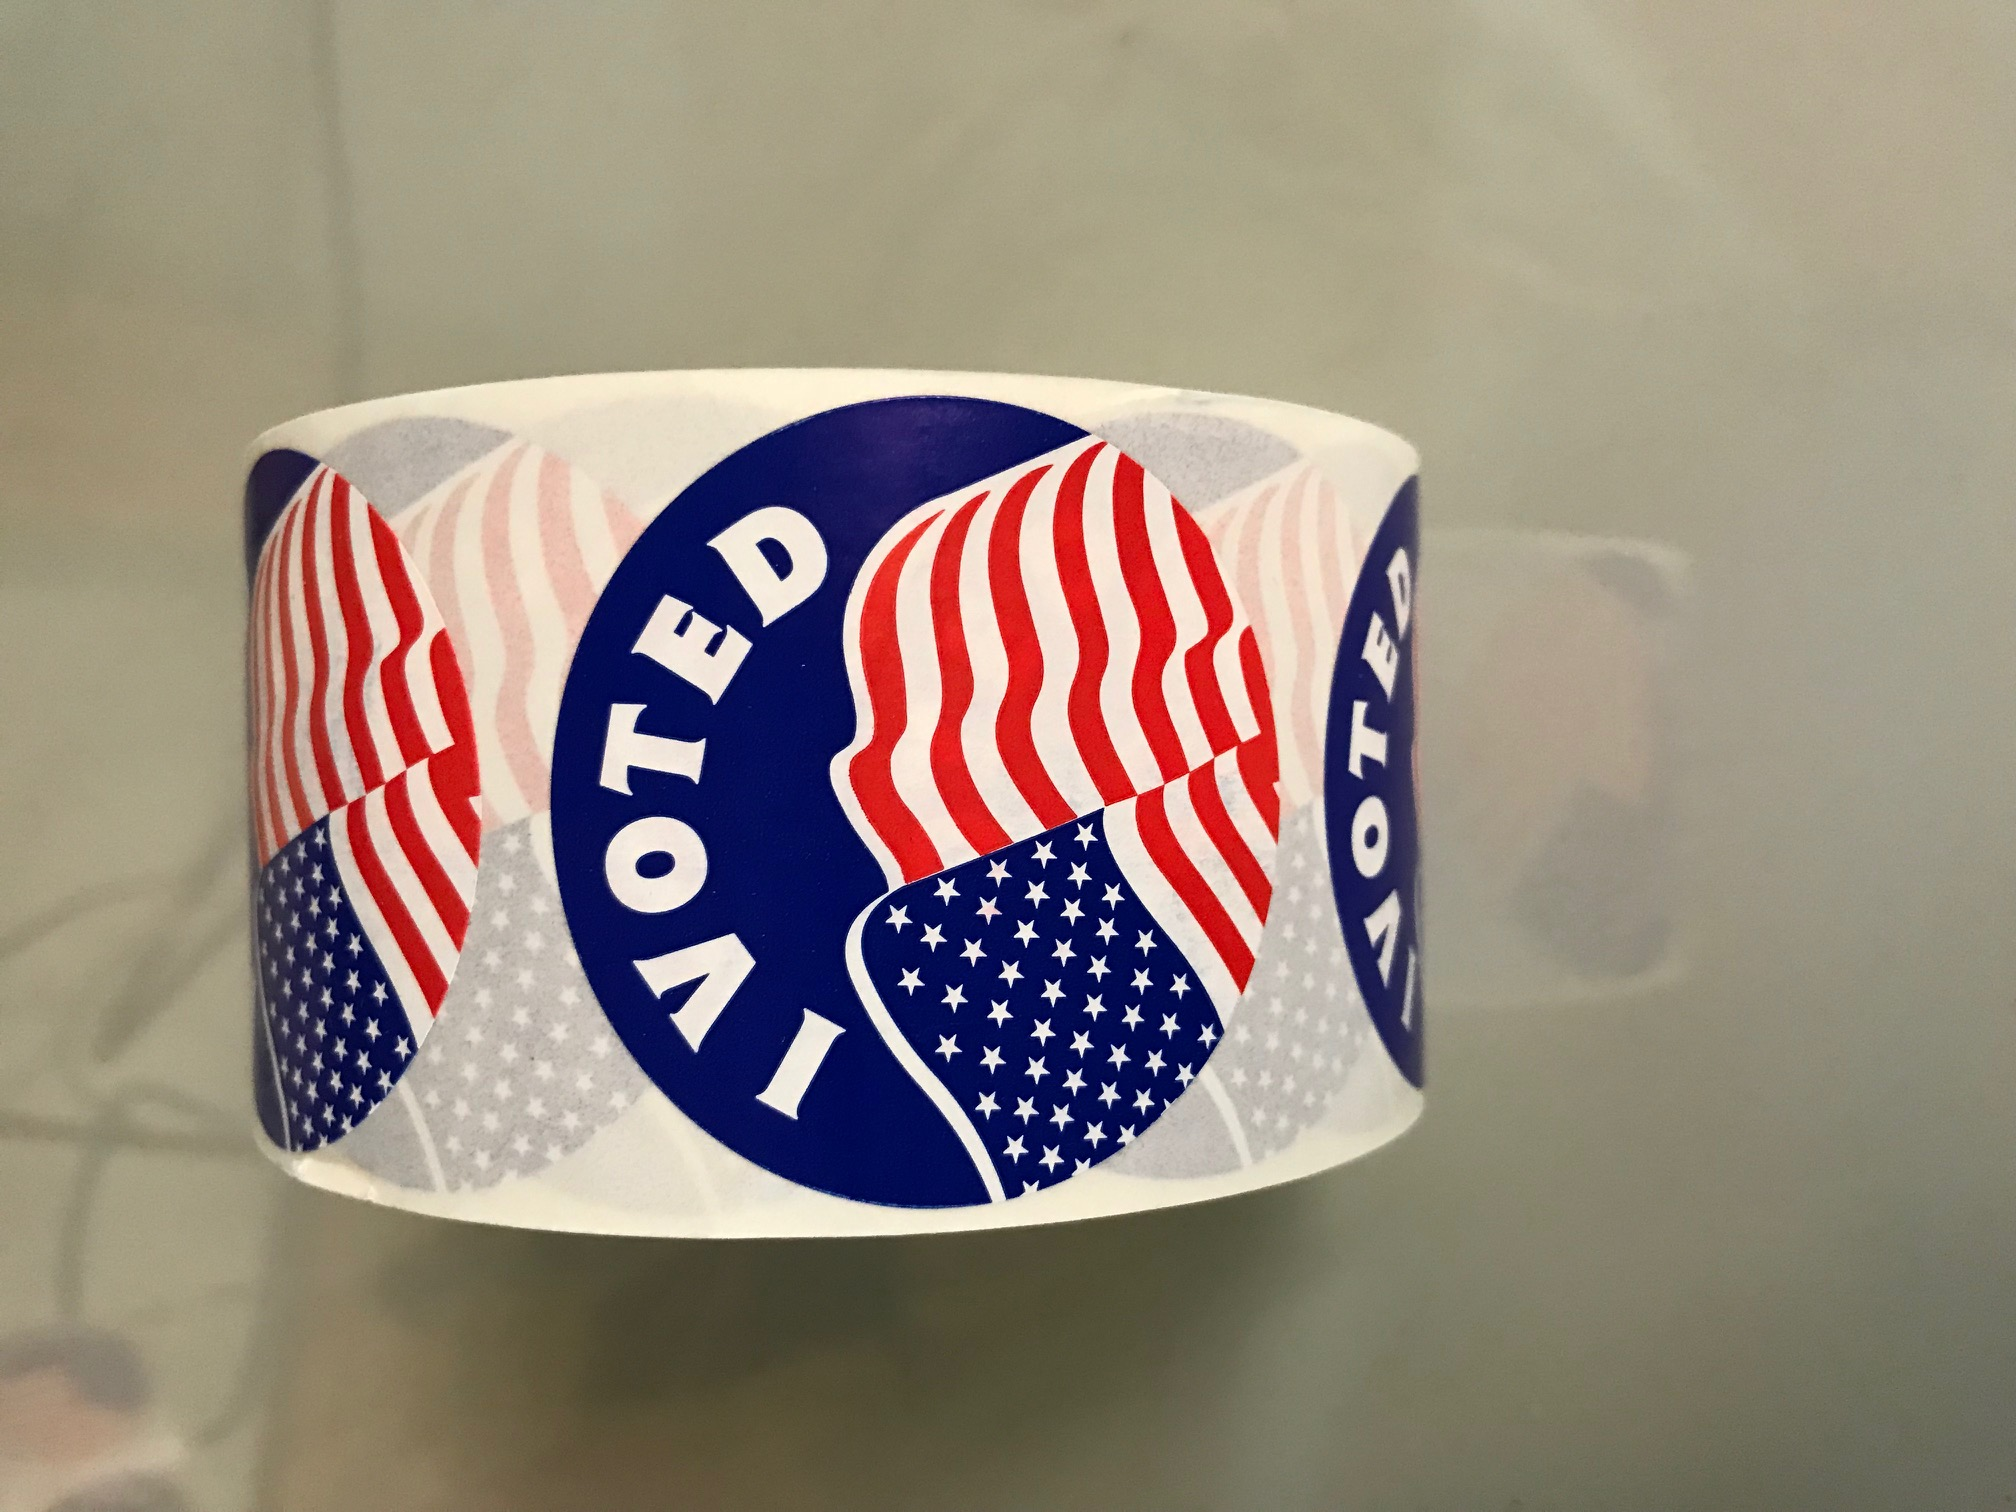 picture relating to I Voted Stickers Printable called AMG Printing Mailing · I Voted Stickers